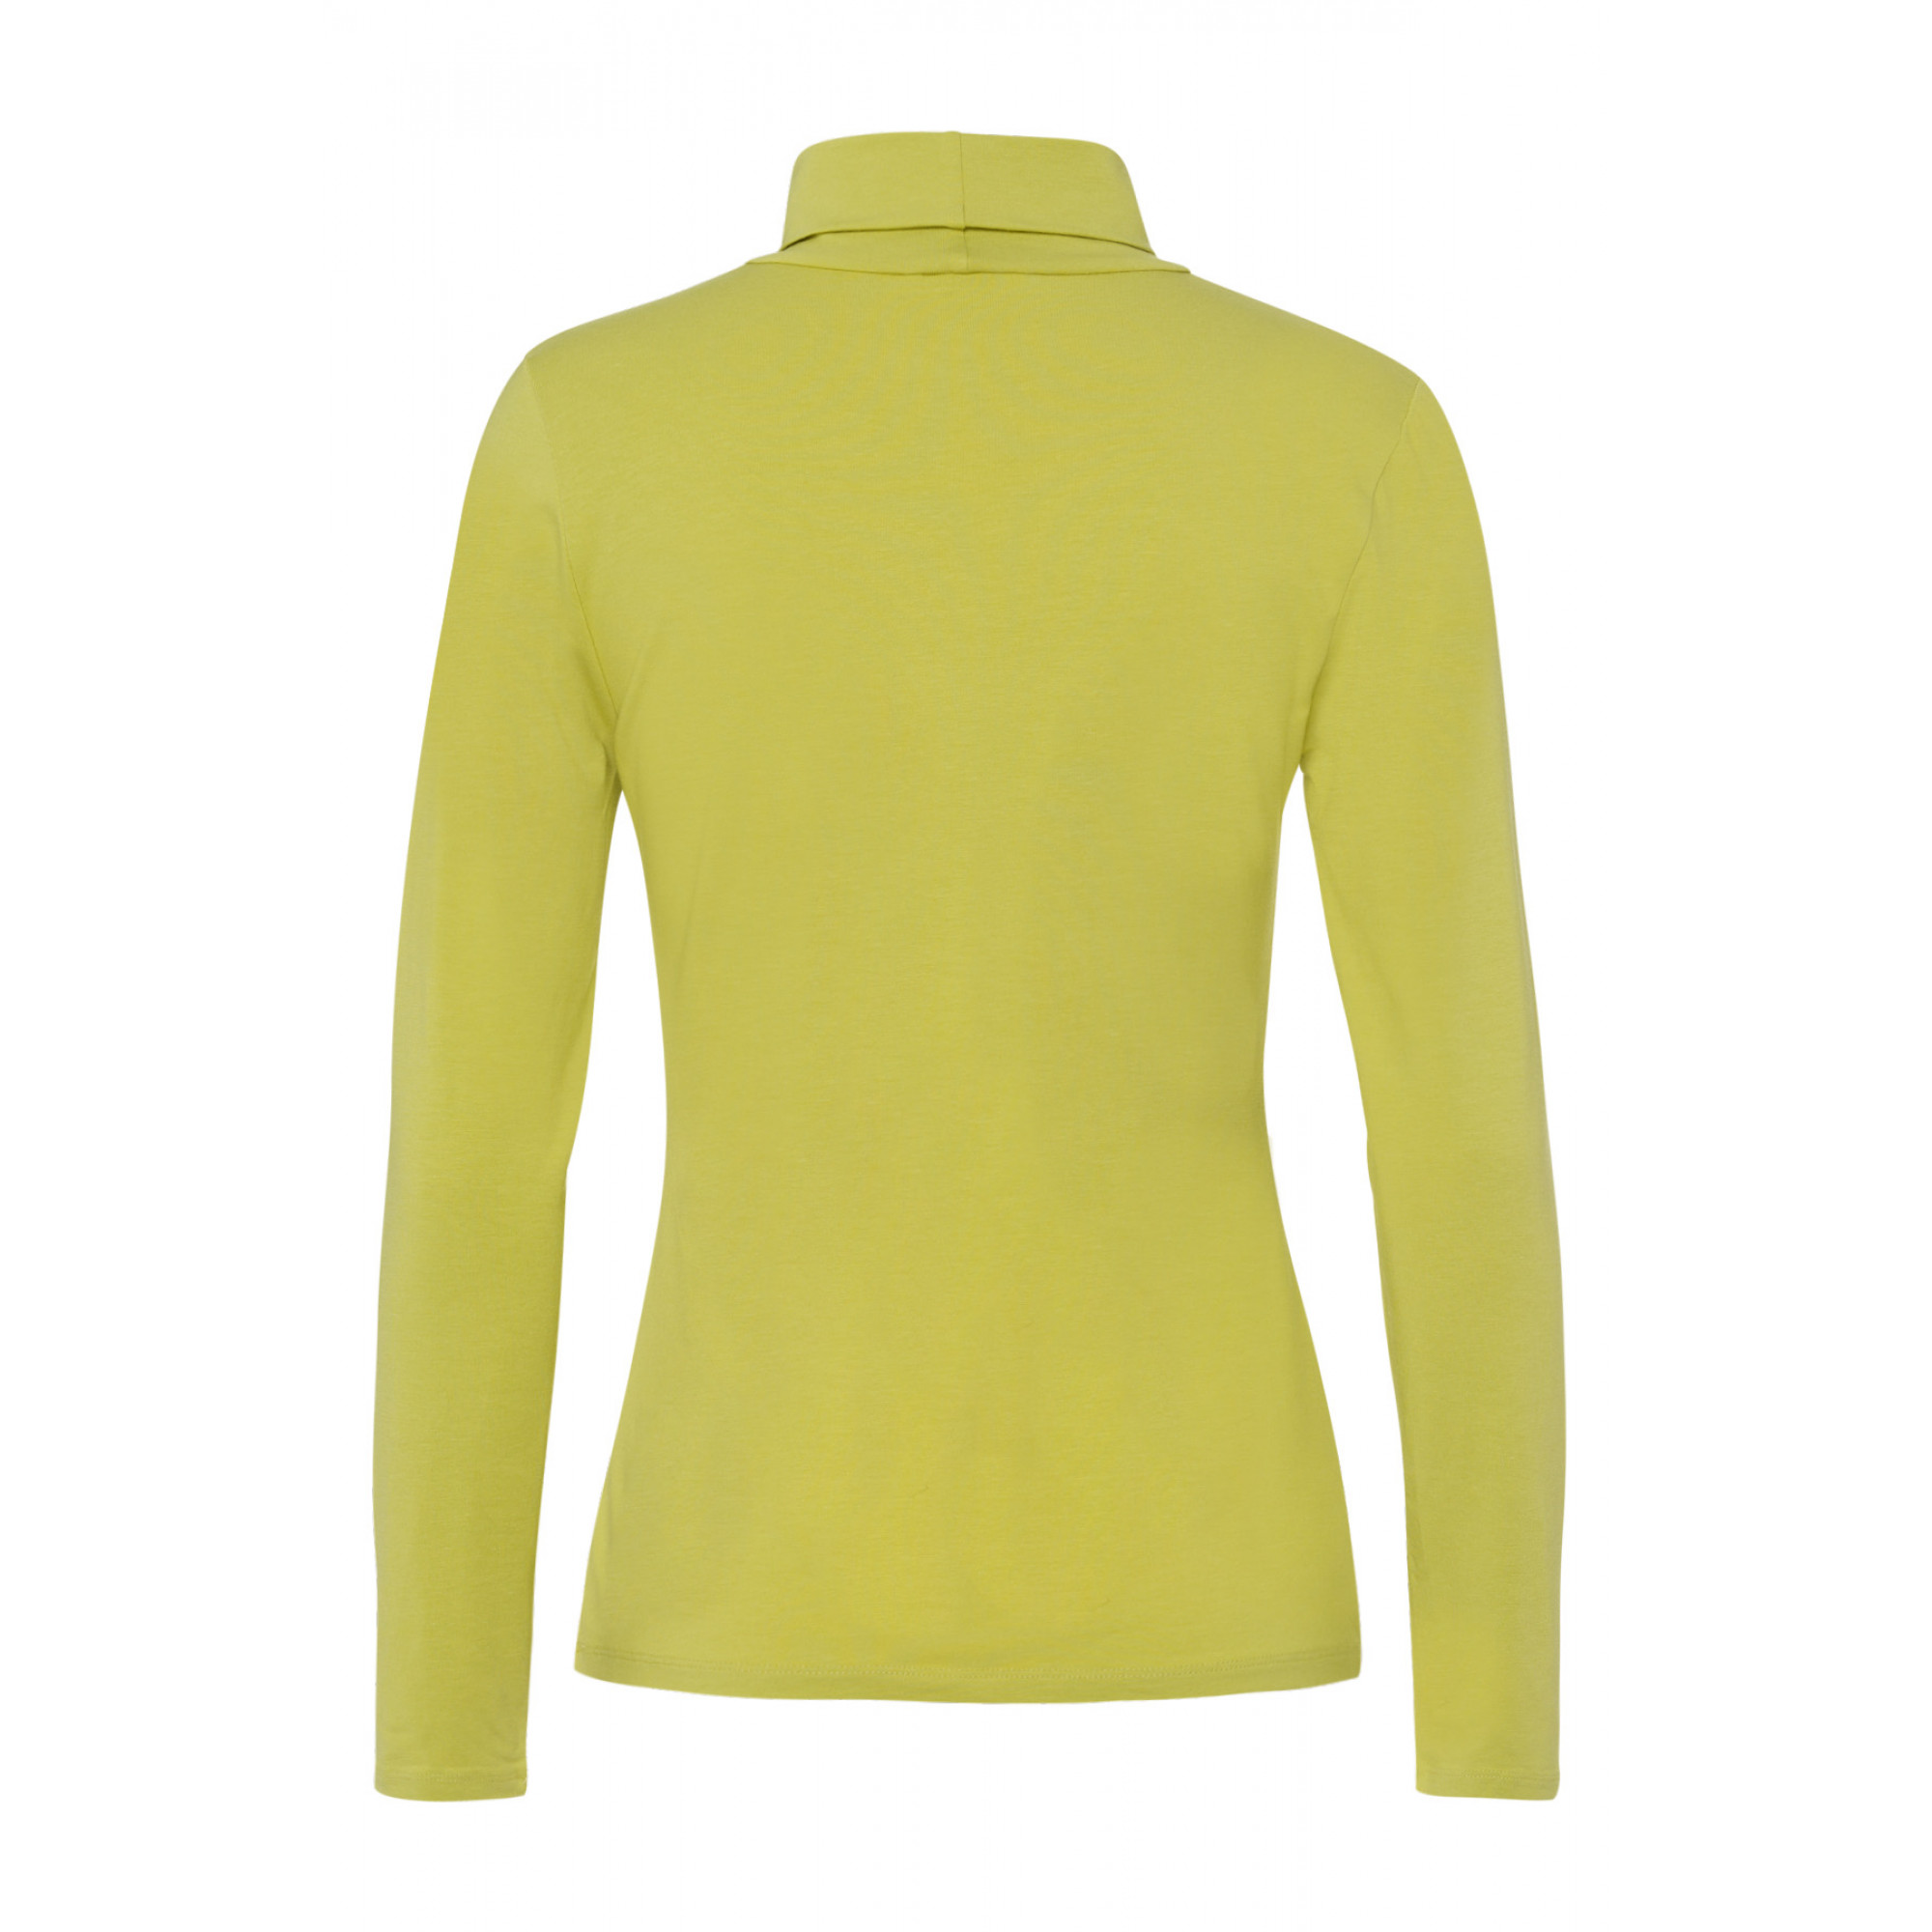 Shirtrolli, lime green 91110014-0610 2